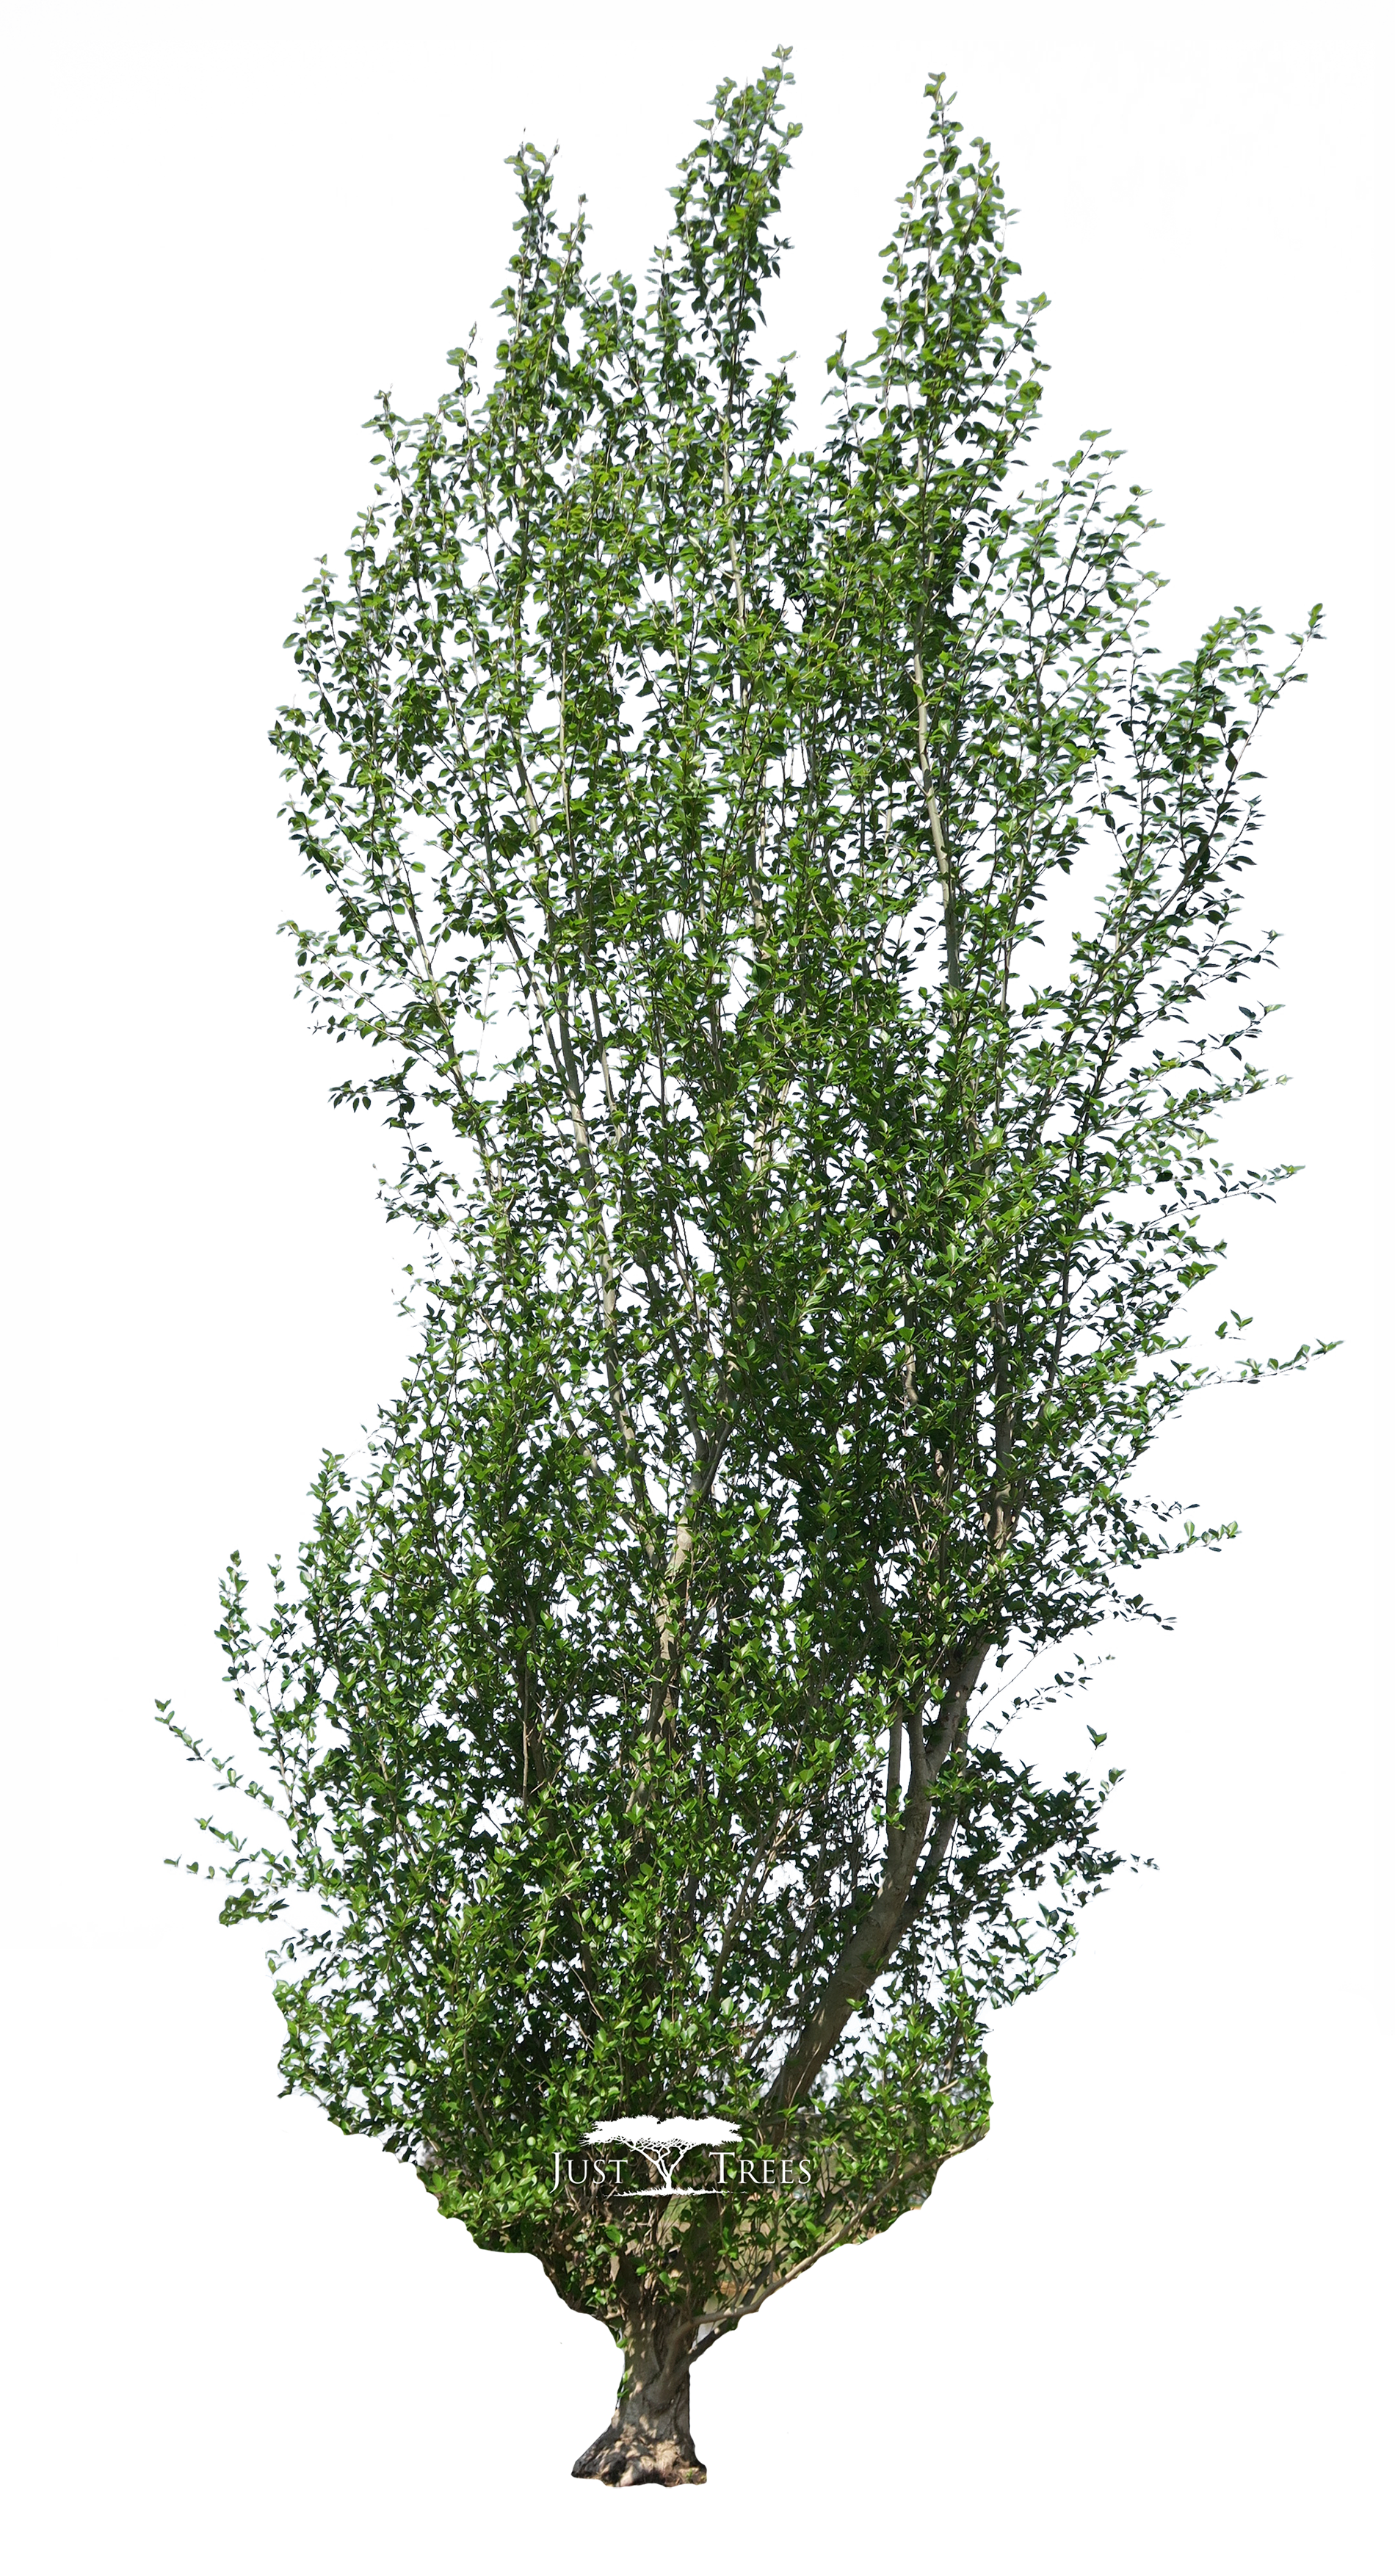 Populus simonii common name. Outdoors clipart swamp grass